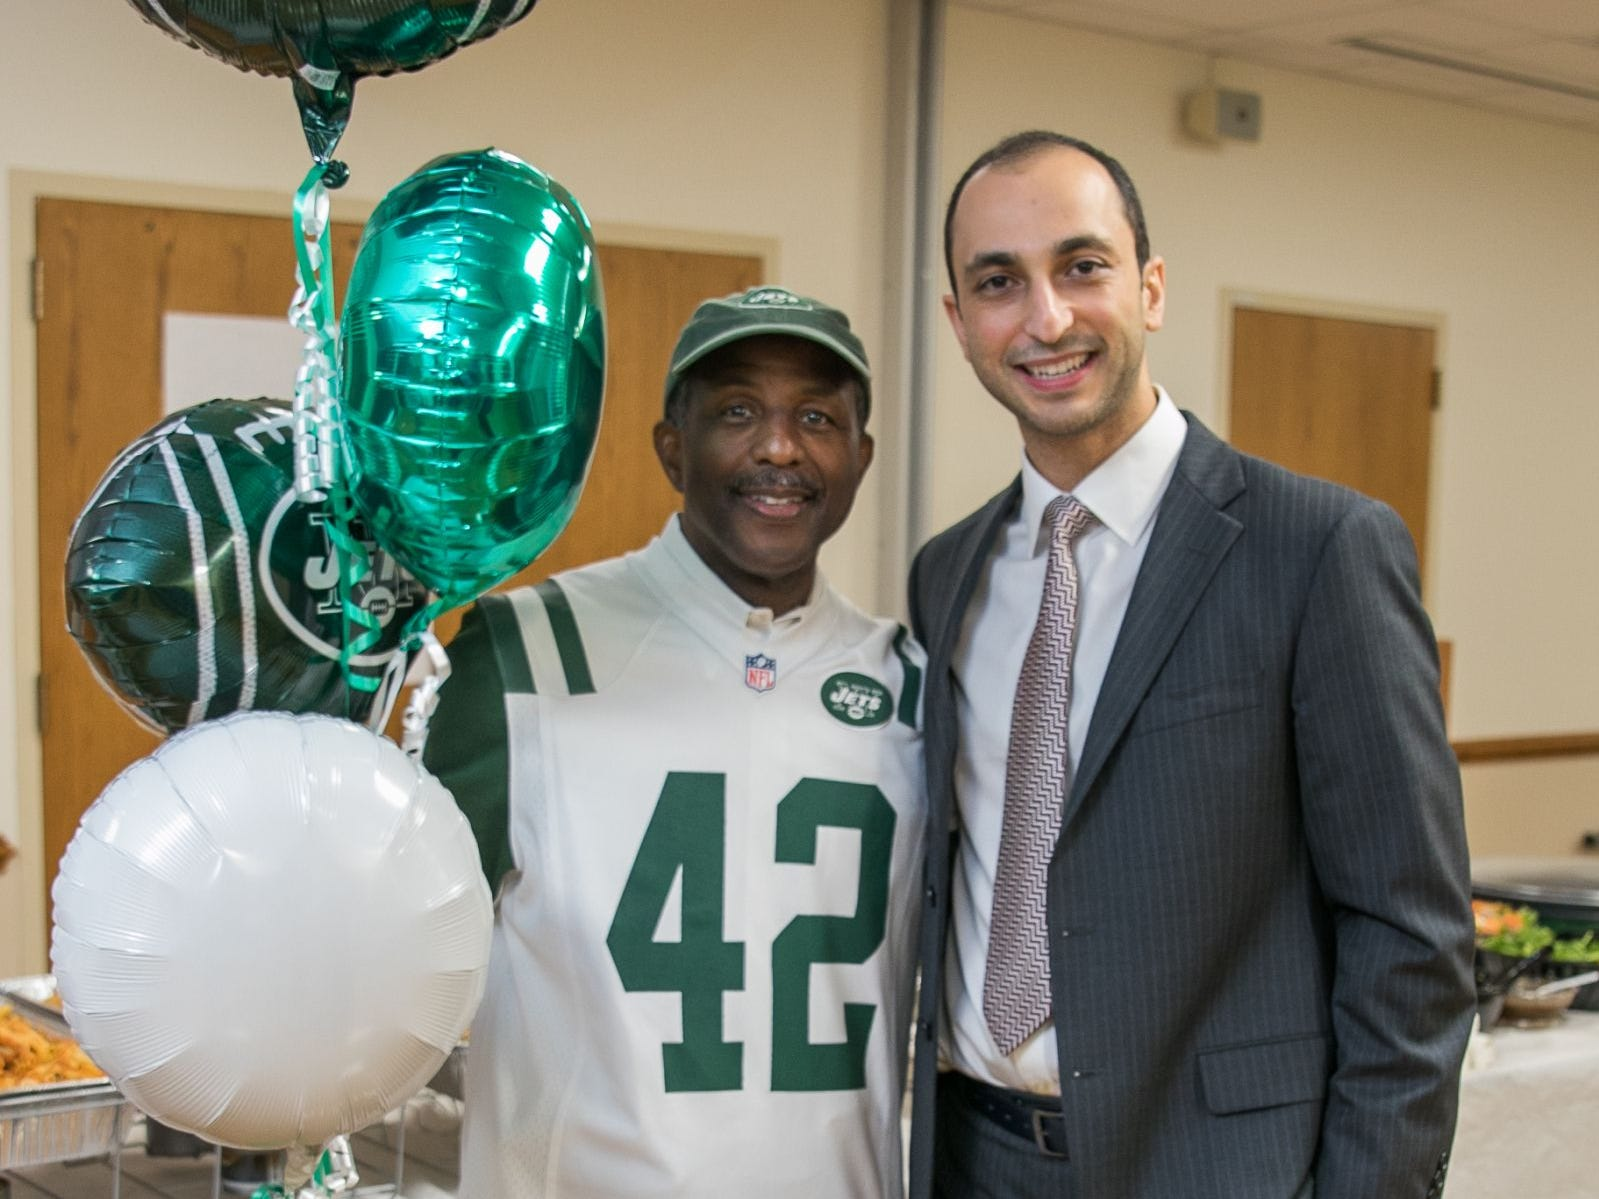 Former NY Jet - Bruce Harper, Dr. Mazyar Ghanaat. Englewood Health hosted its Men's Health and Football event with former Jets and Giants players and Don La Greca from ESPN radio. Attendees watched the Thursday night football game while receiving advice about staying healthy and tackling health problems early on. 09/20/2018